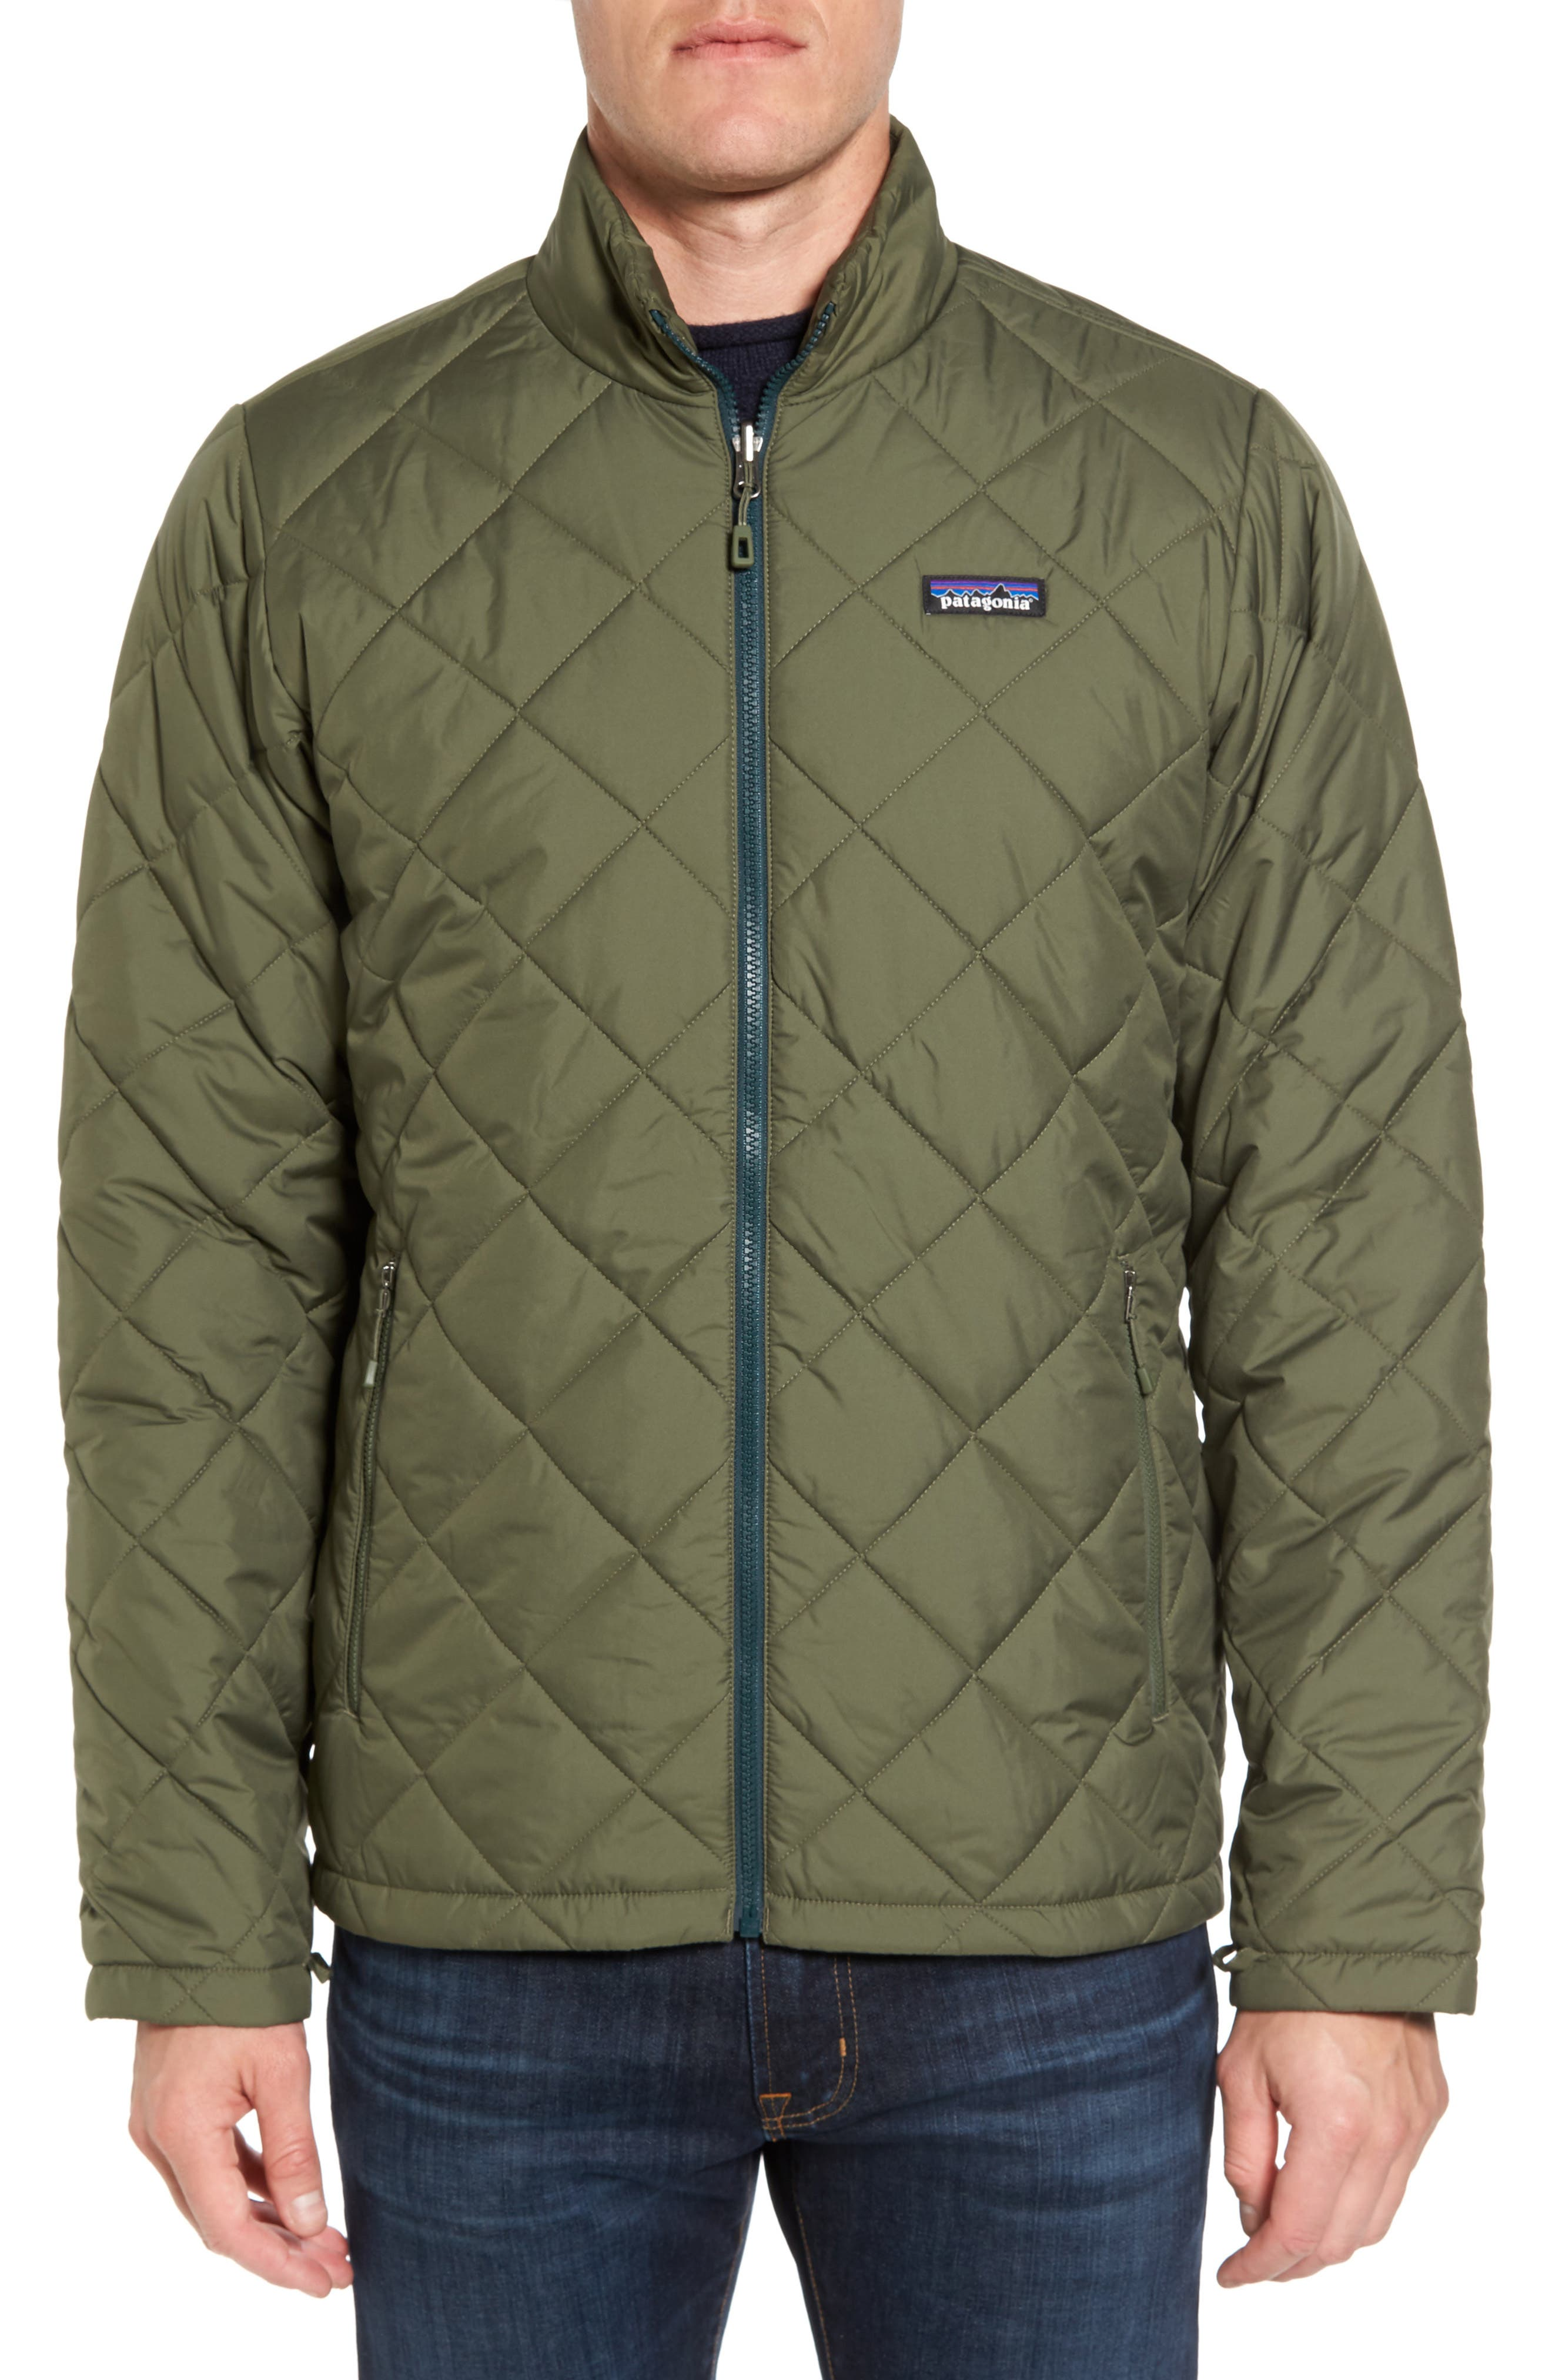 Windsweep 3-in-1 Jacket,                             Alternate thumbnail 4, color,                             002